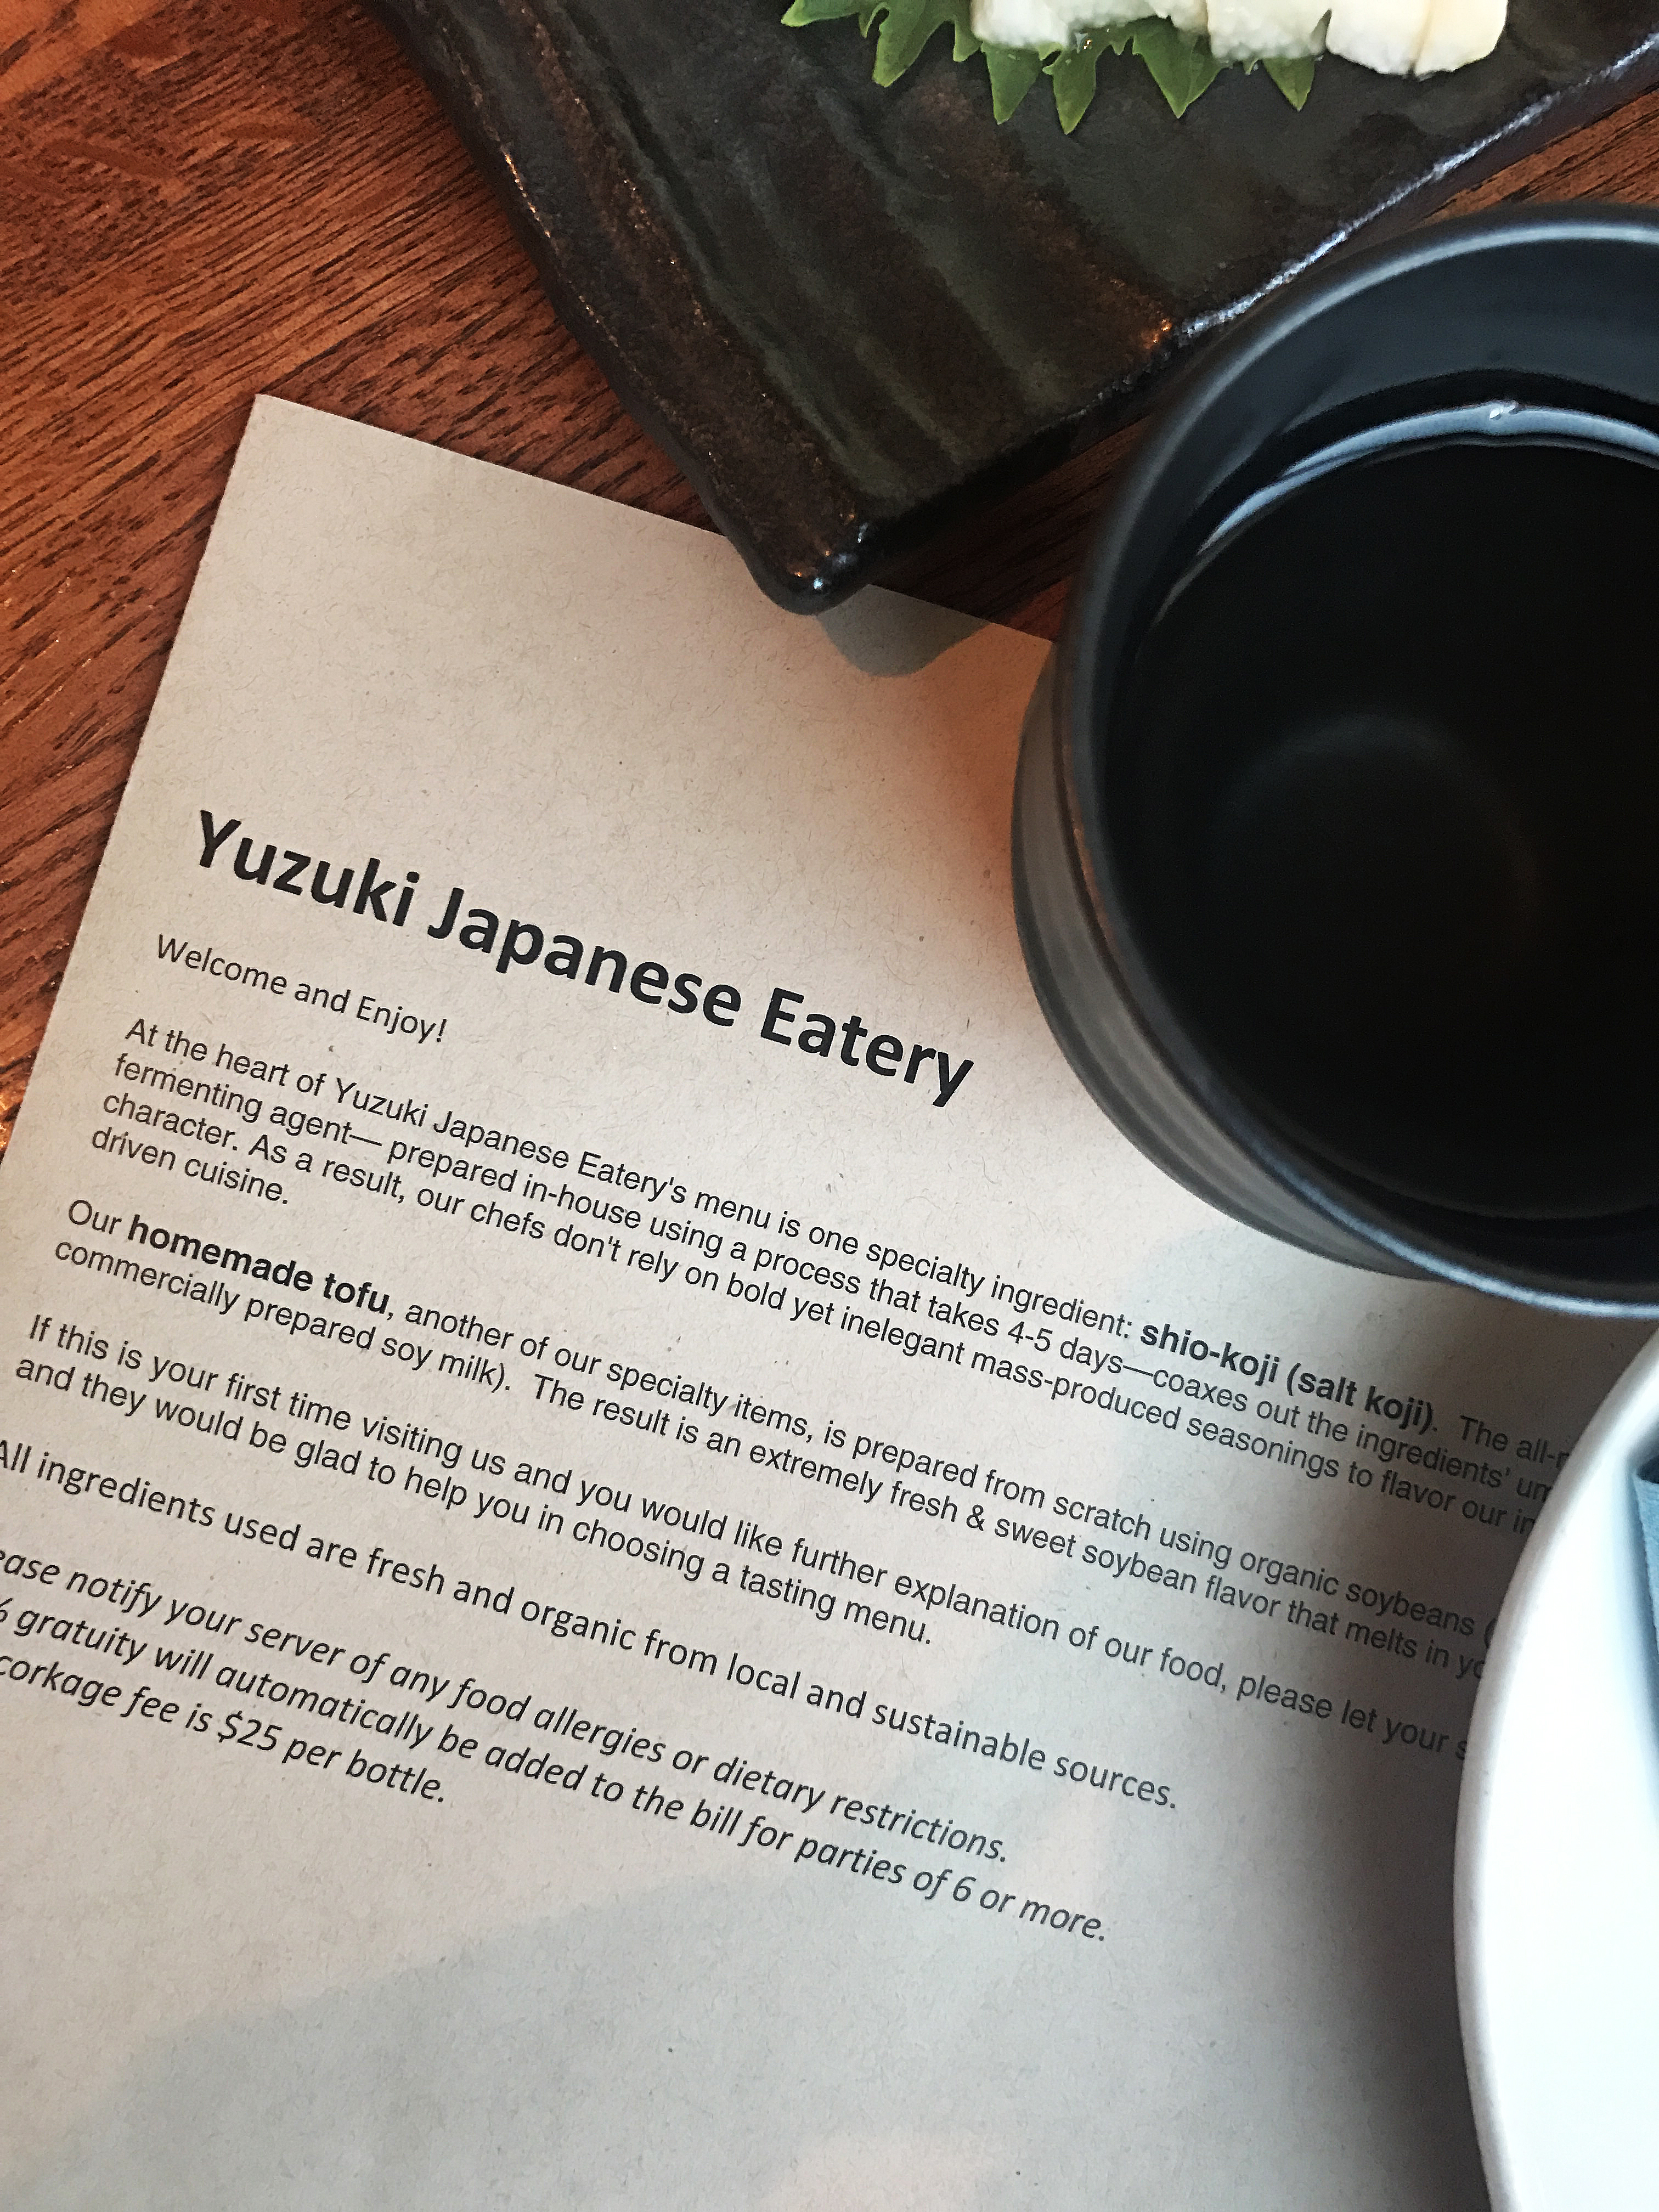 Review: Yuzuki Japanese Eatery